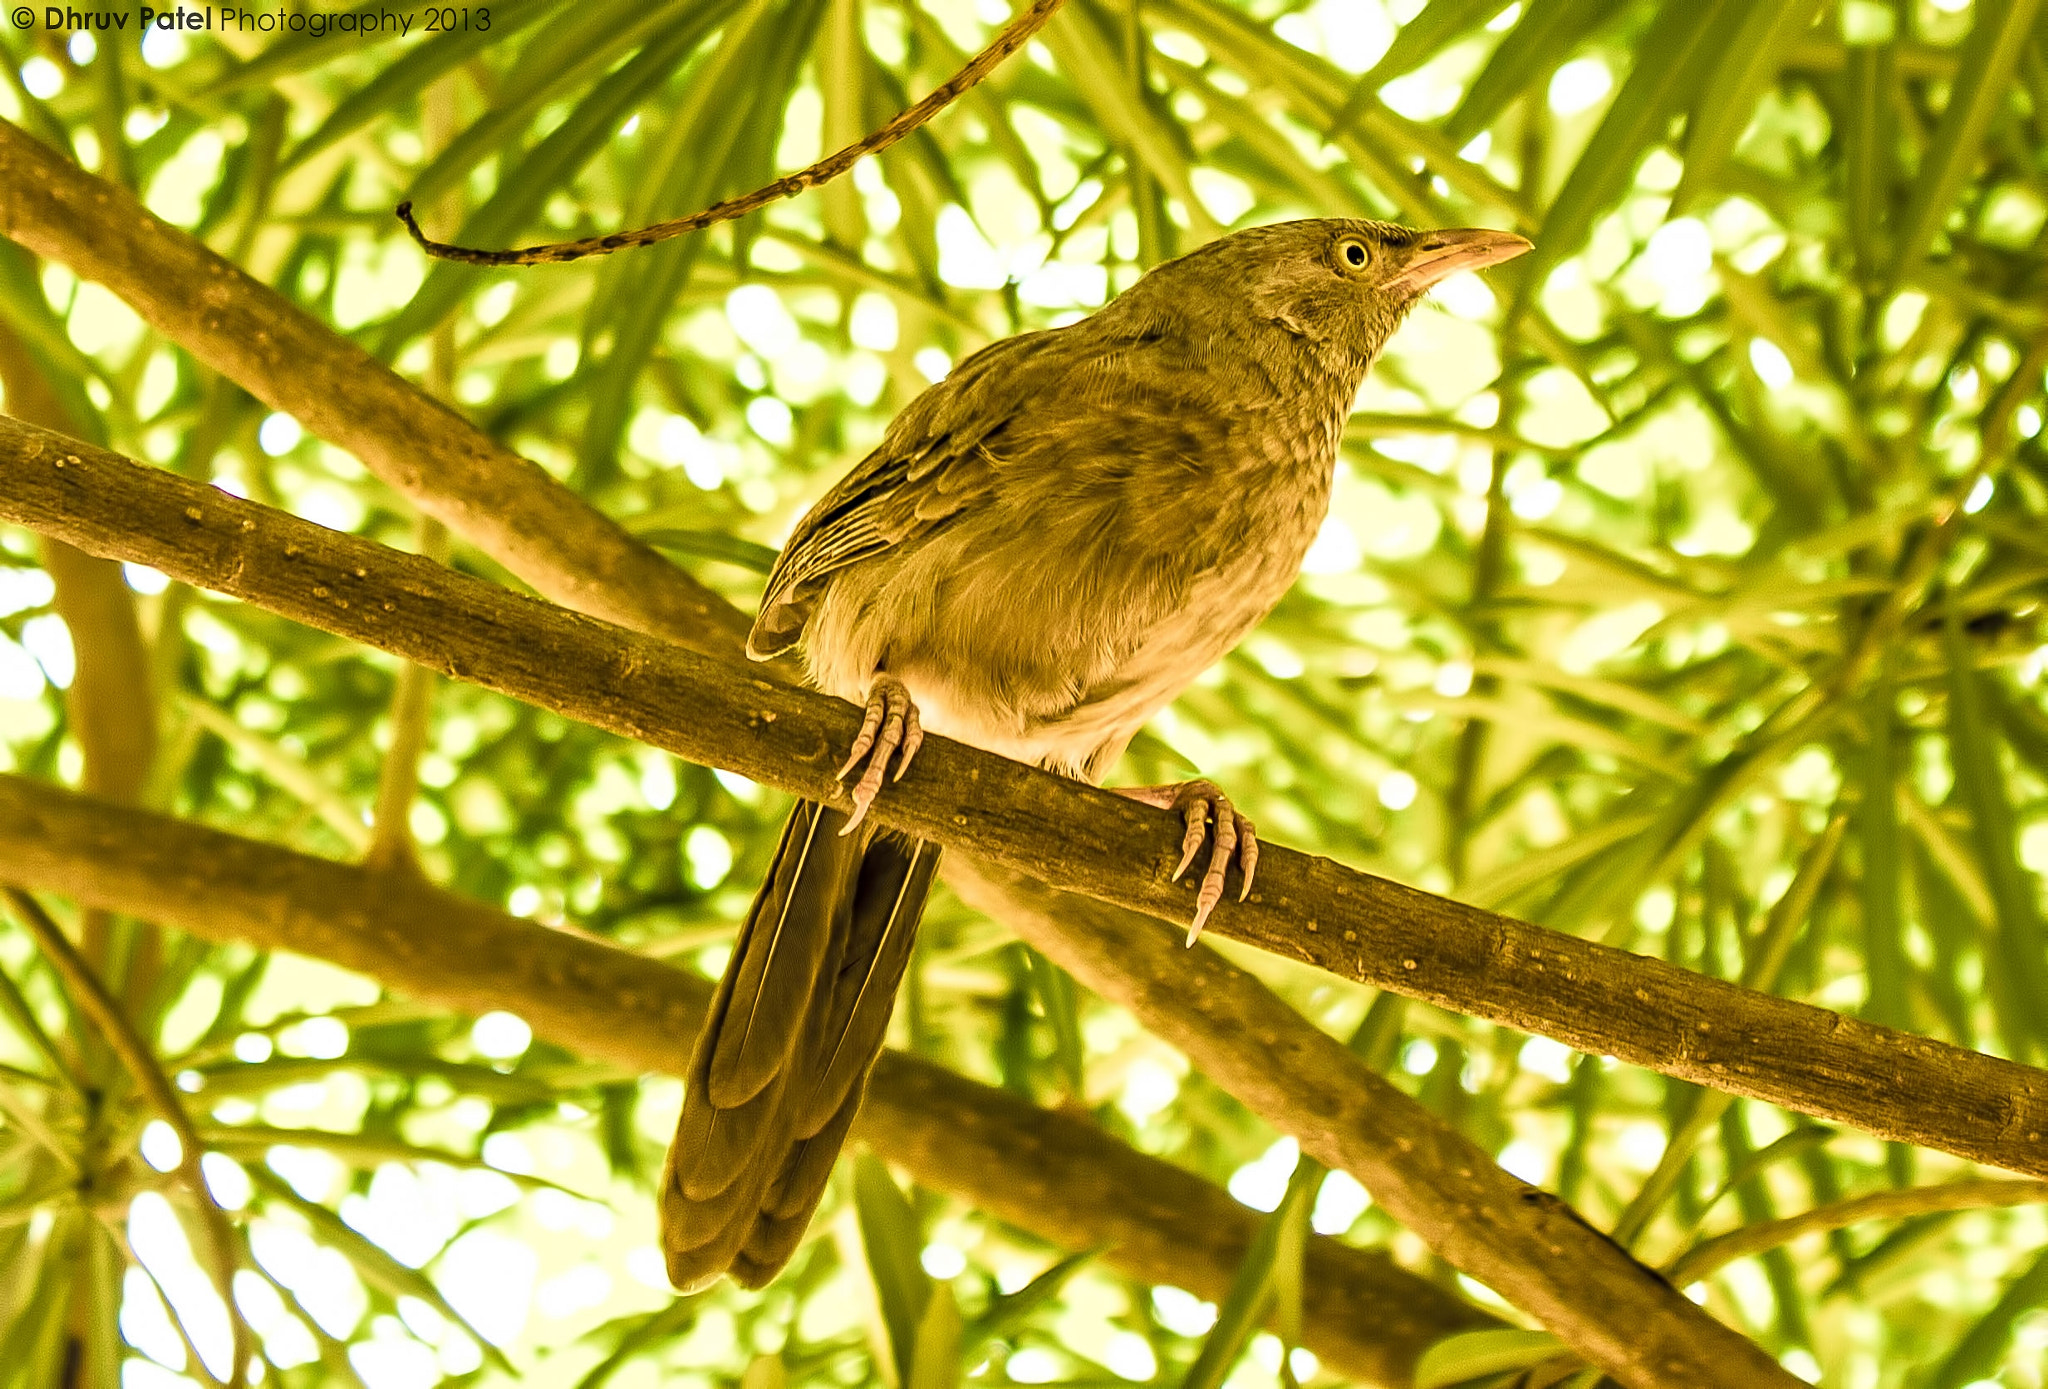 Photograph Jungle Babbler by Dhruv Patel on 500px